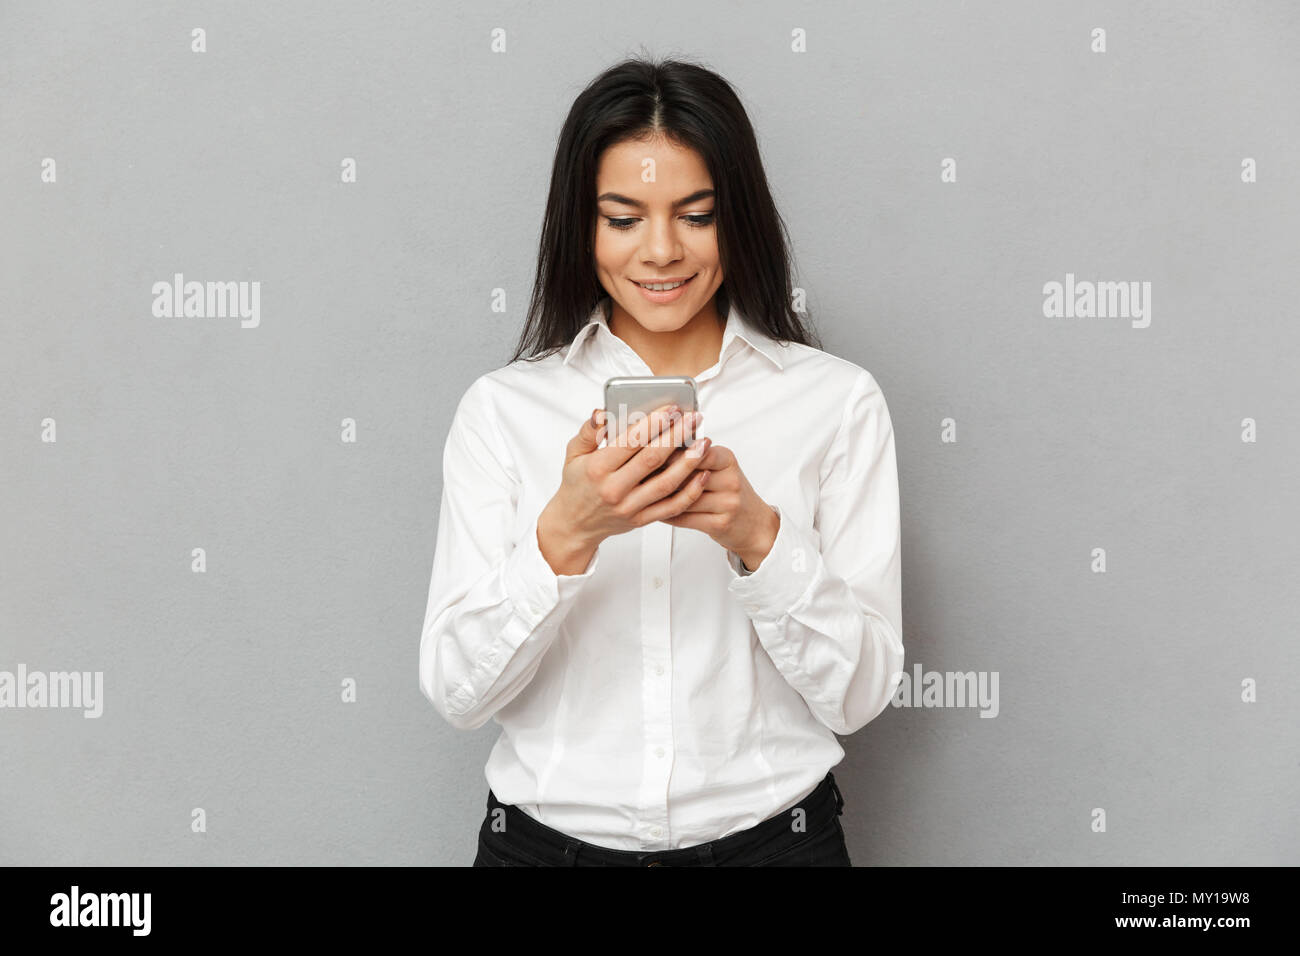 Photo of content young woman 30s in formal wear standing with smartphone in hands isolated over gray background - Stock Image